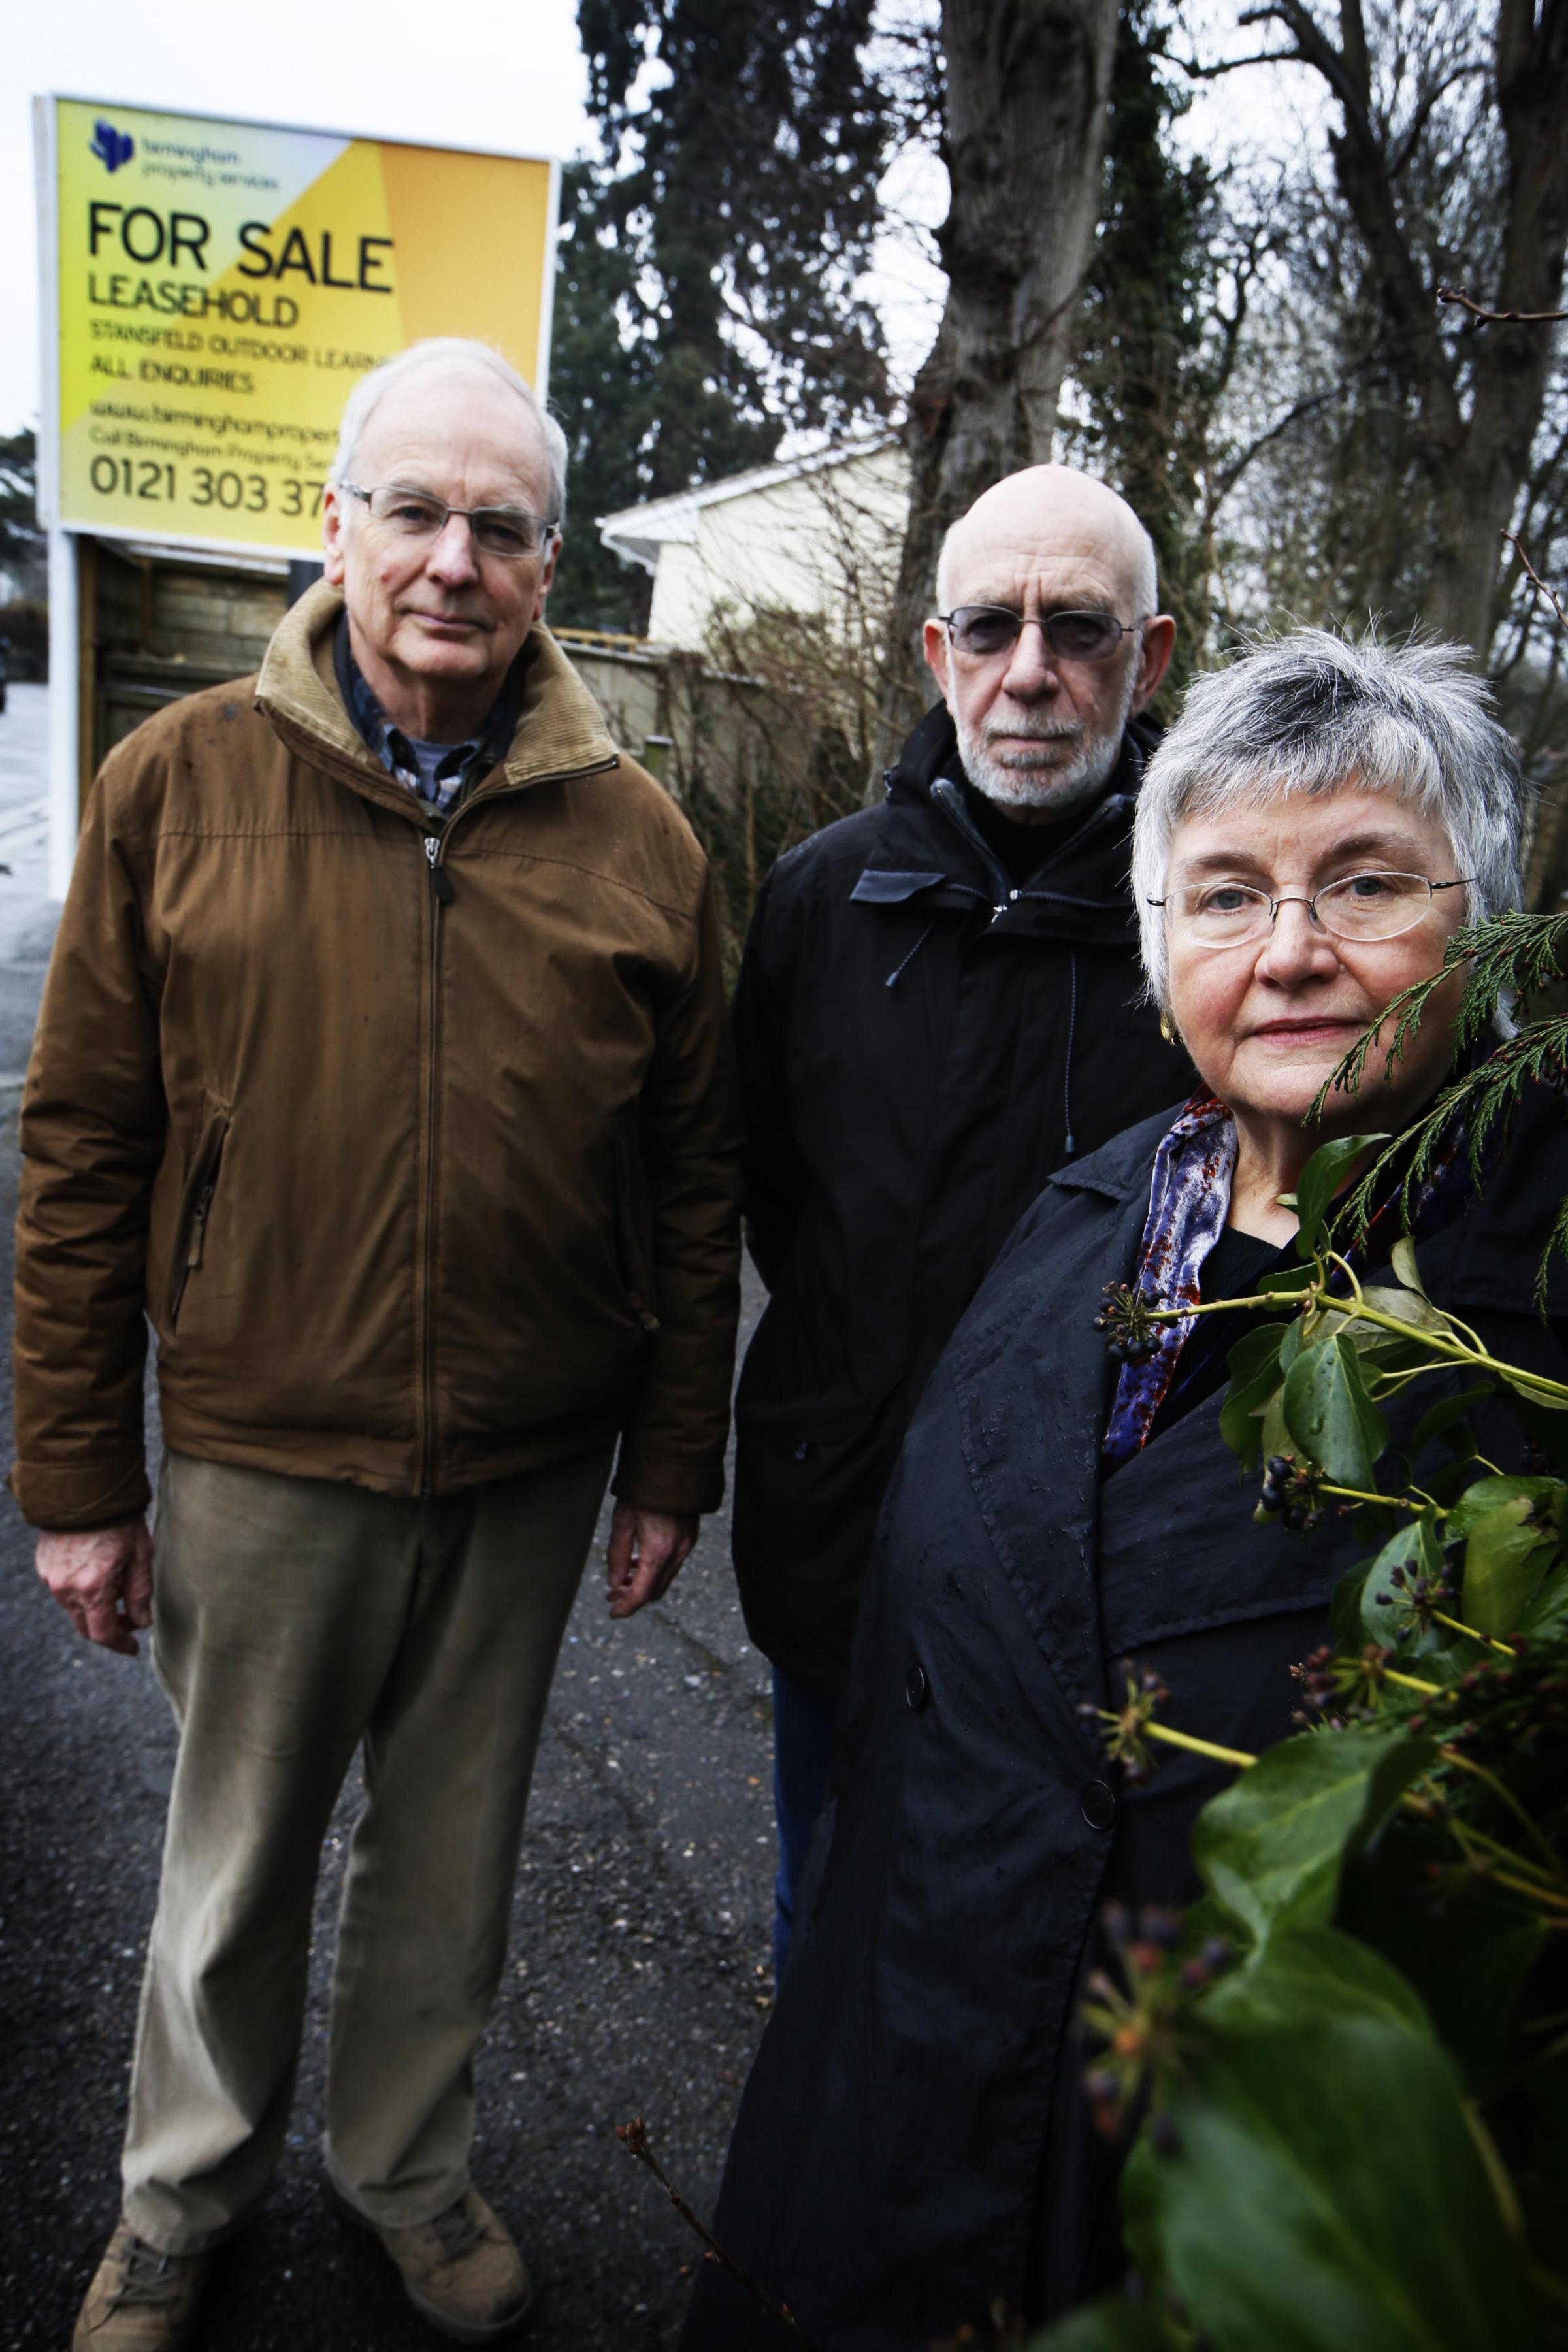 From left, Richard Bradley, resident John Glasson and Marie Vickers, who are campaigning to buy the Stansfeld Outdoor Education Centre. Picture: Ed Nix